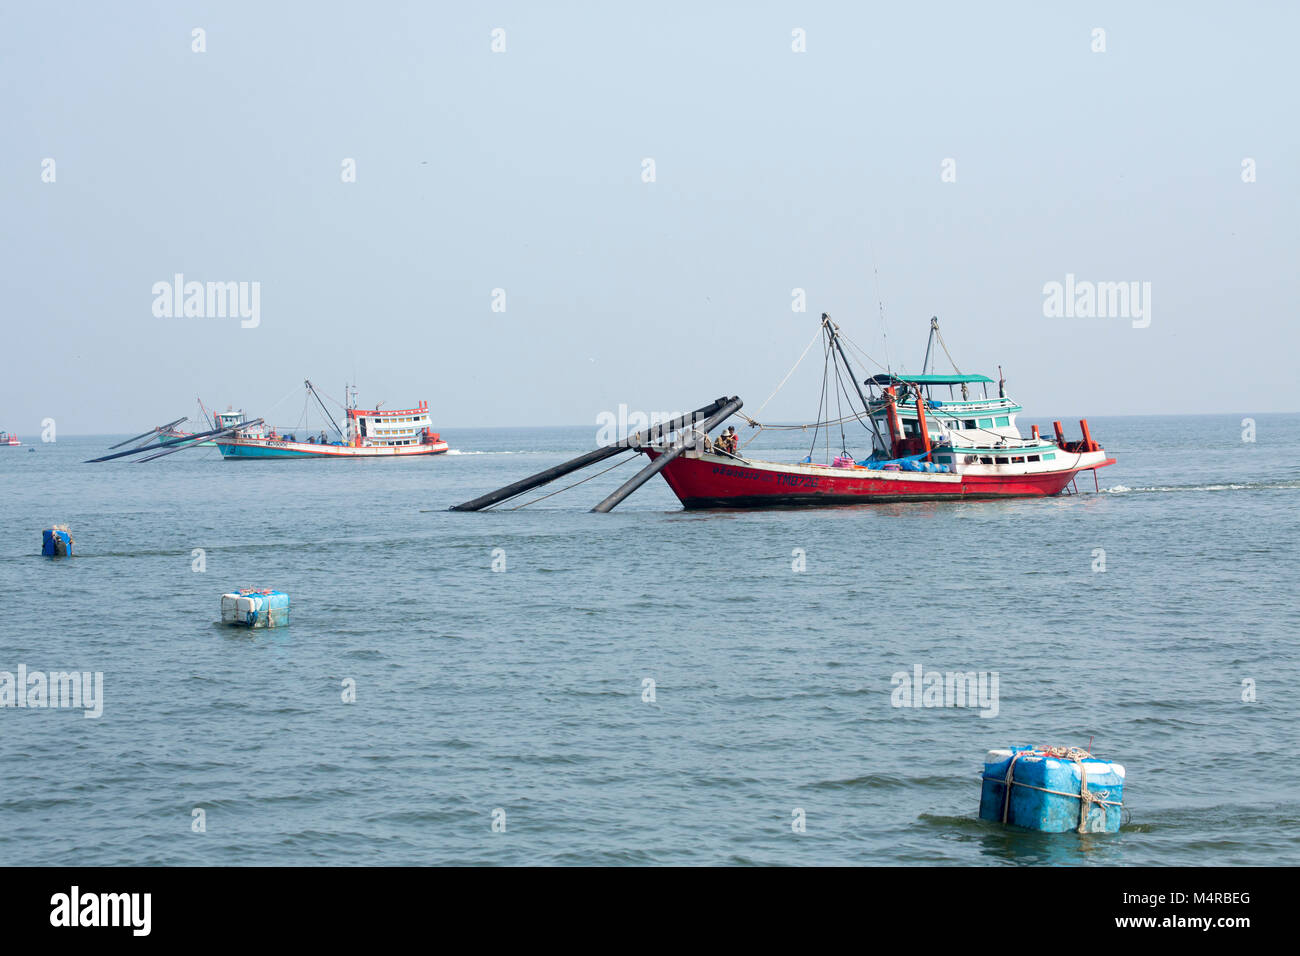 Fishing boats in the Gulf of Thailand Stock Photo